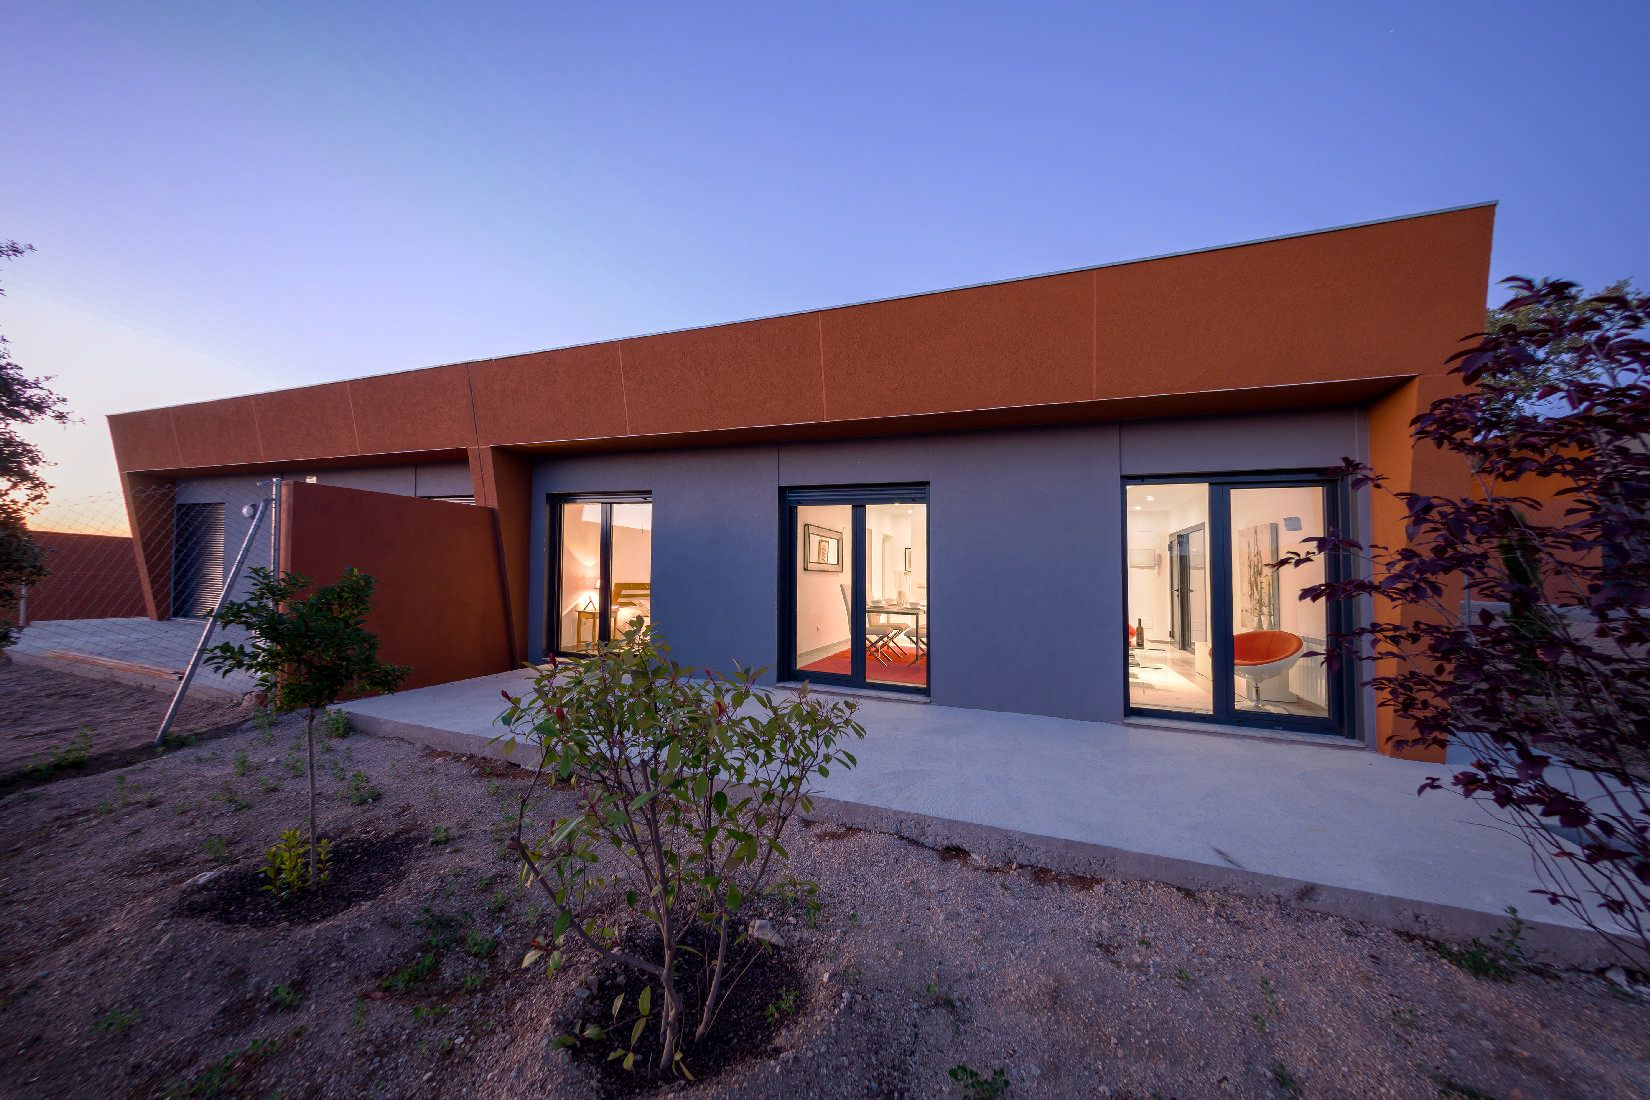 Casa Violeta - Steel modular home projects